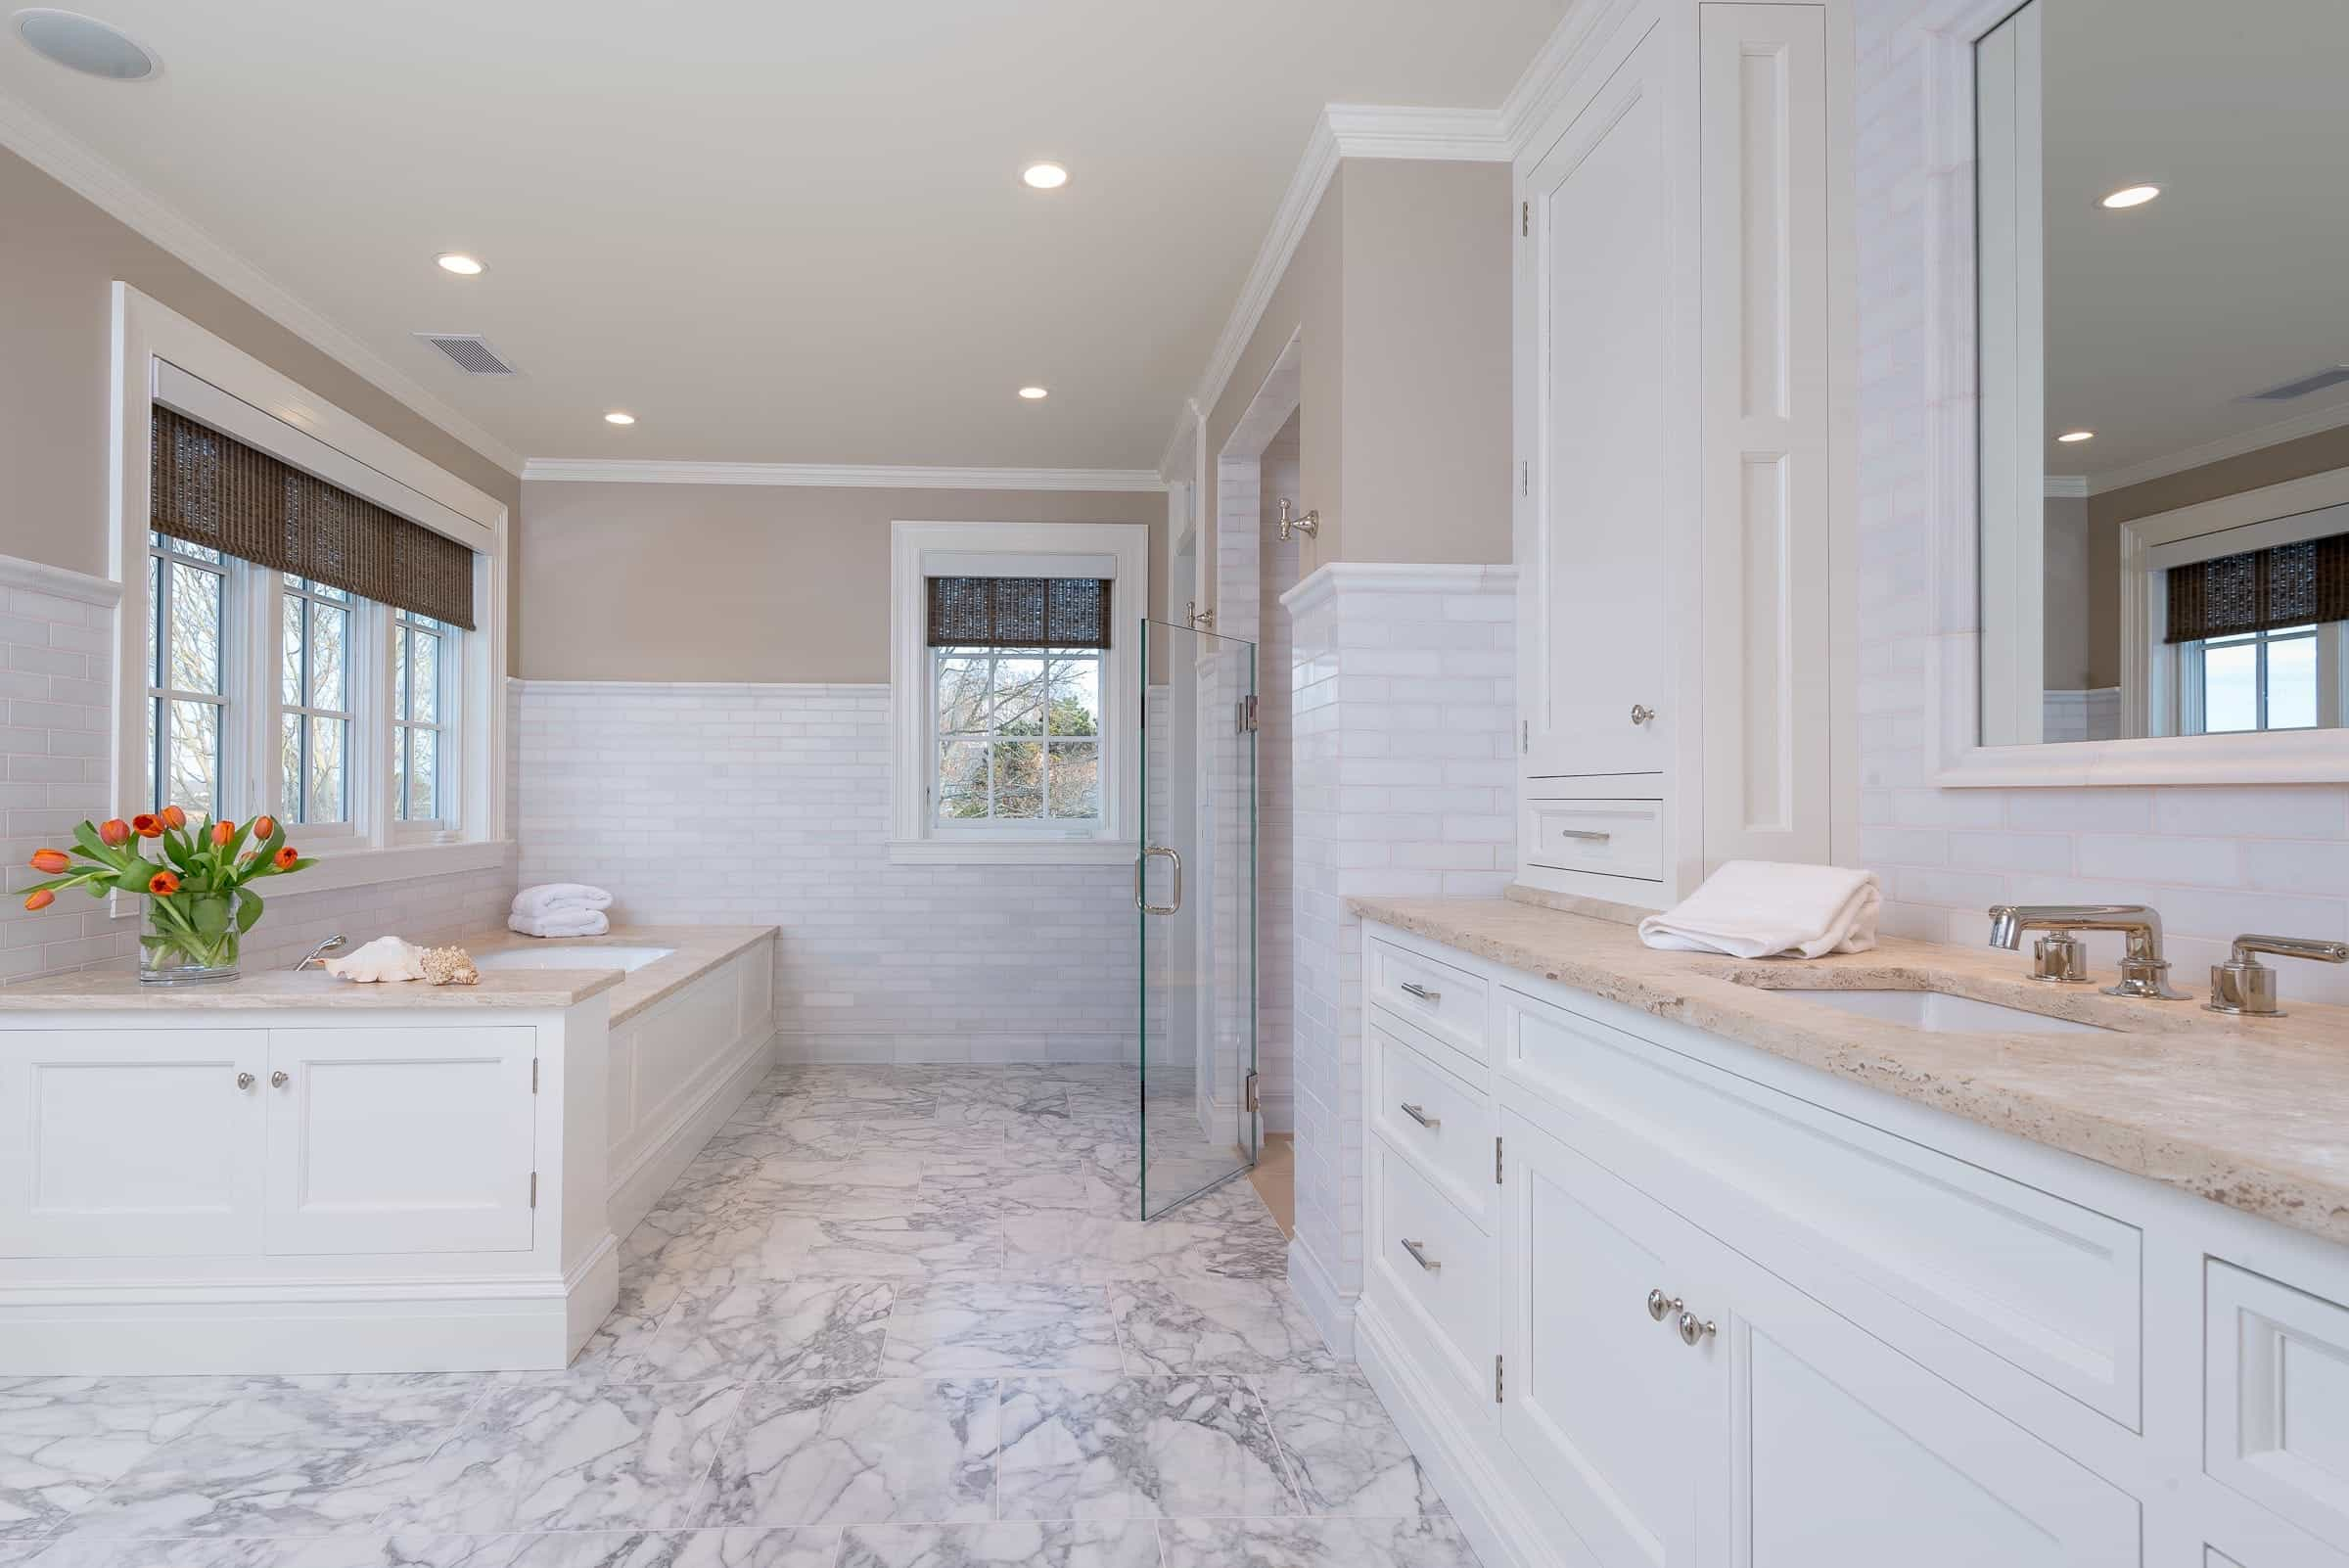 Elegance Transitional Bathroom With Calcutta Marble Floors (Image 8 of 20)